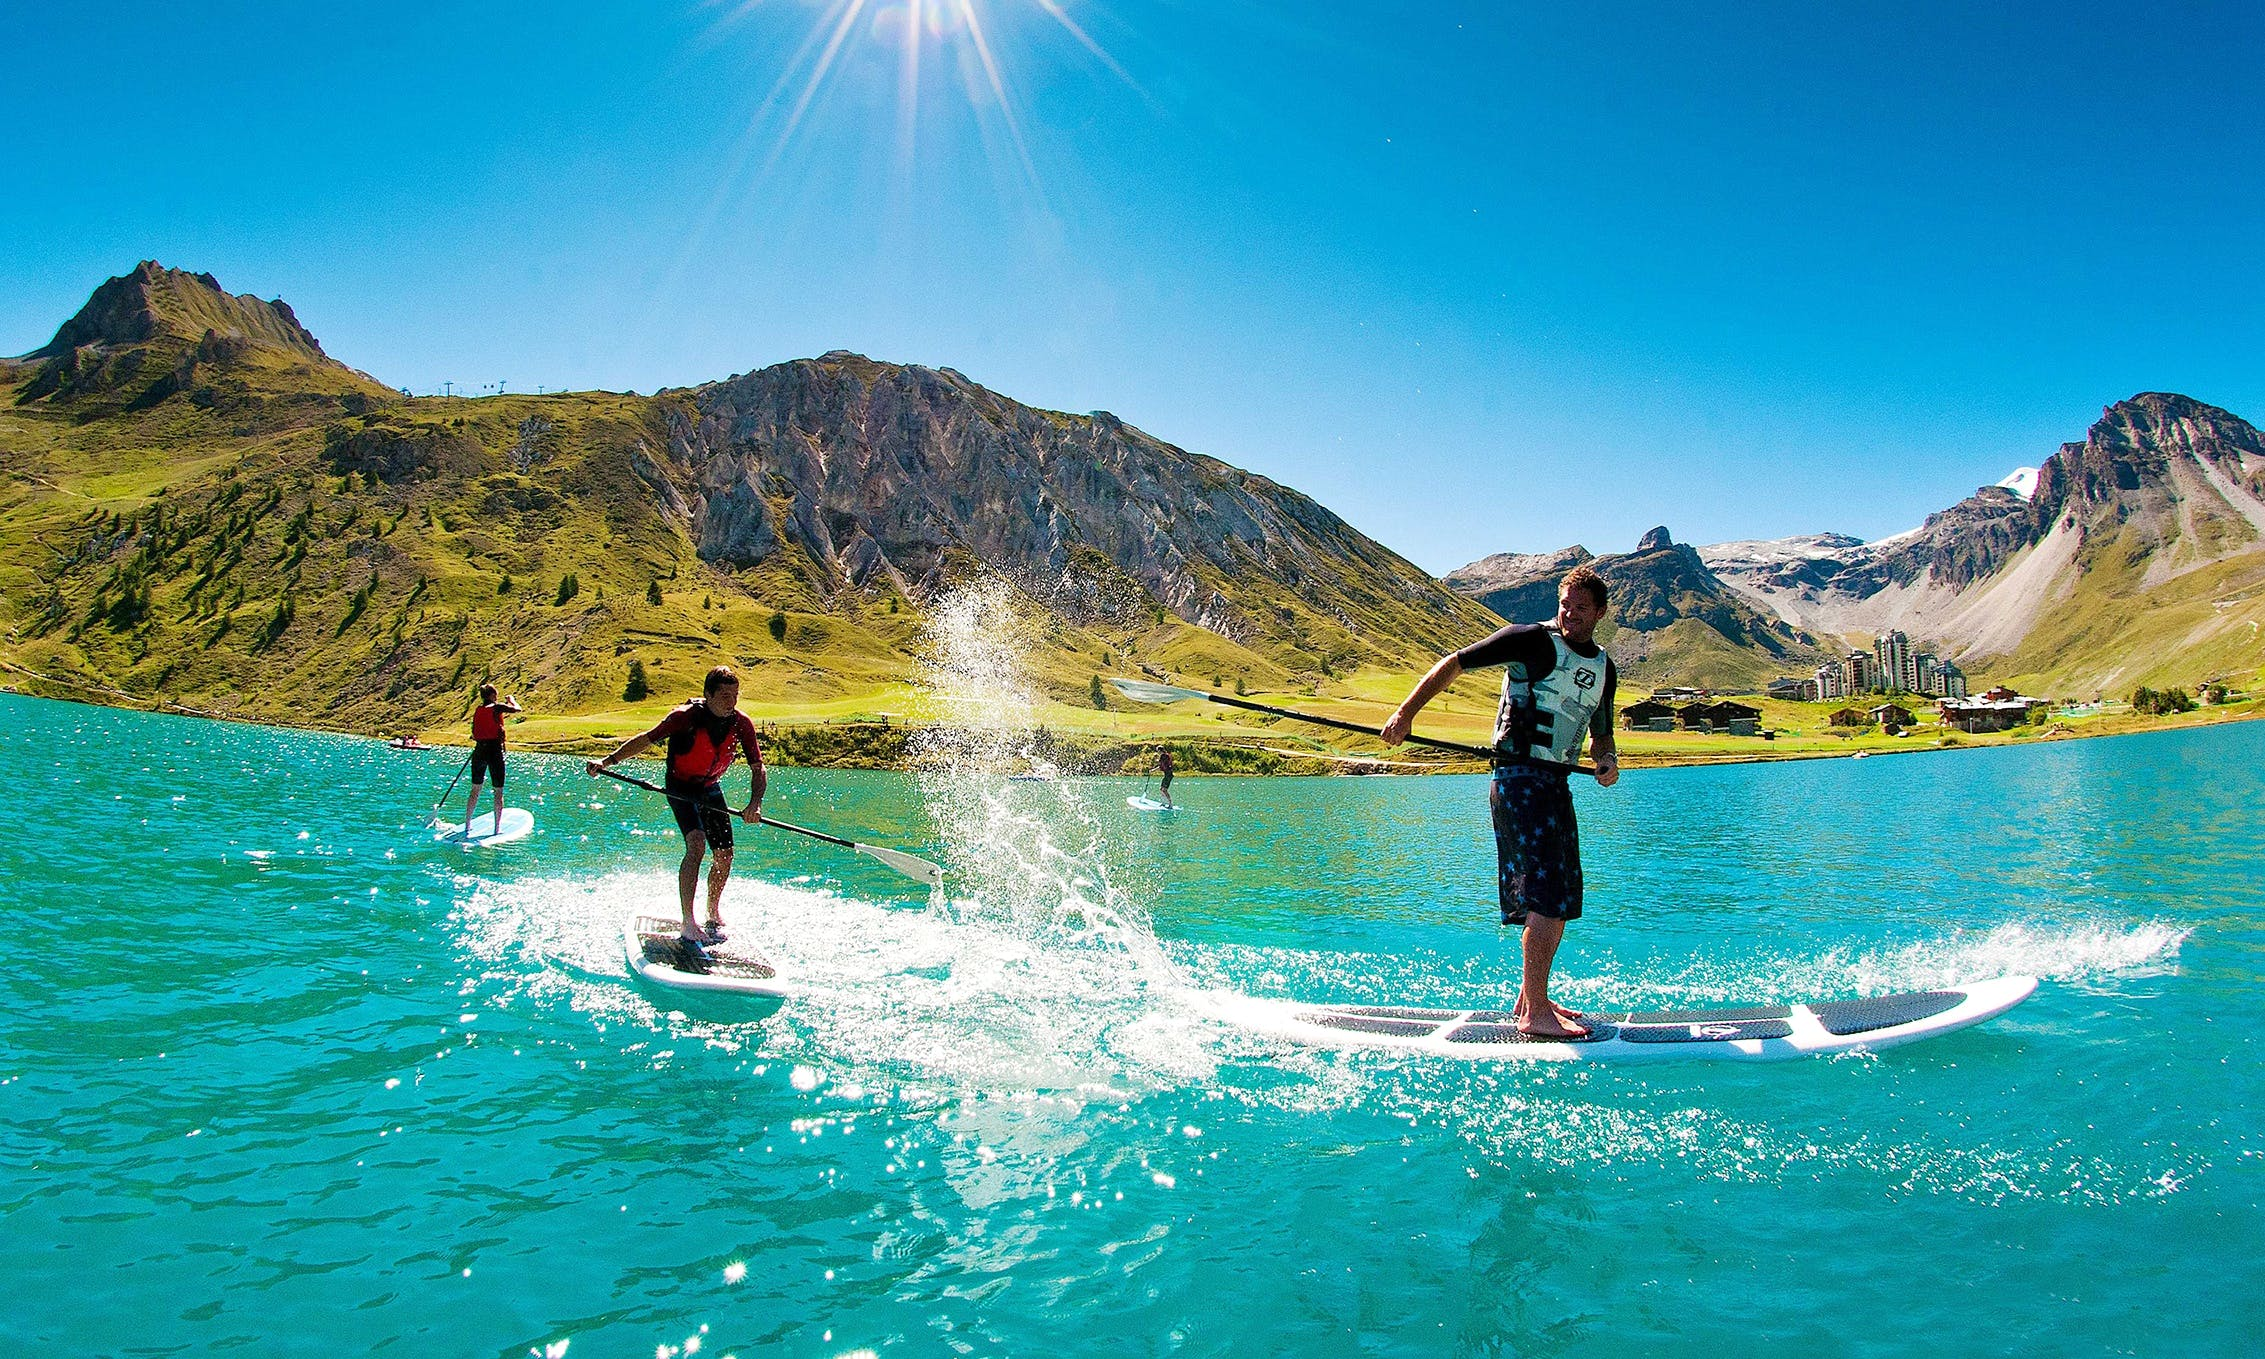 Stand Up Paddleboard Rental in Thury-Harcourt, France